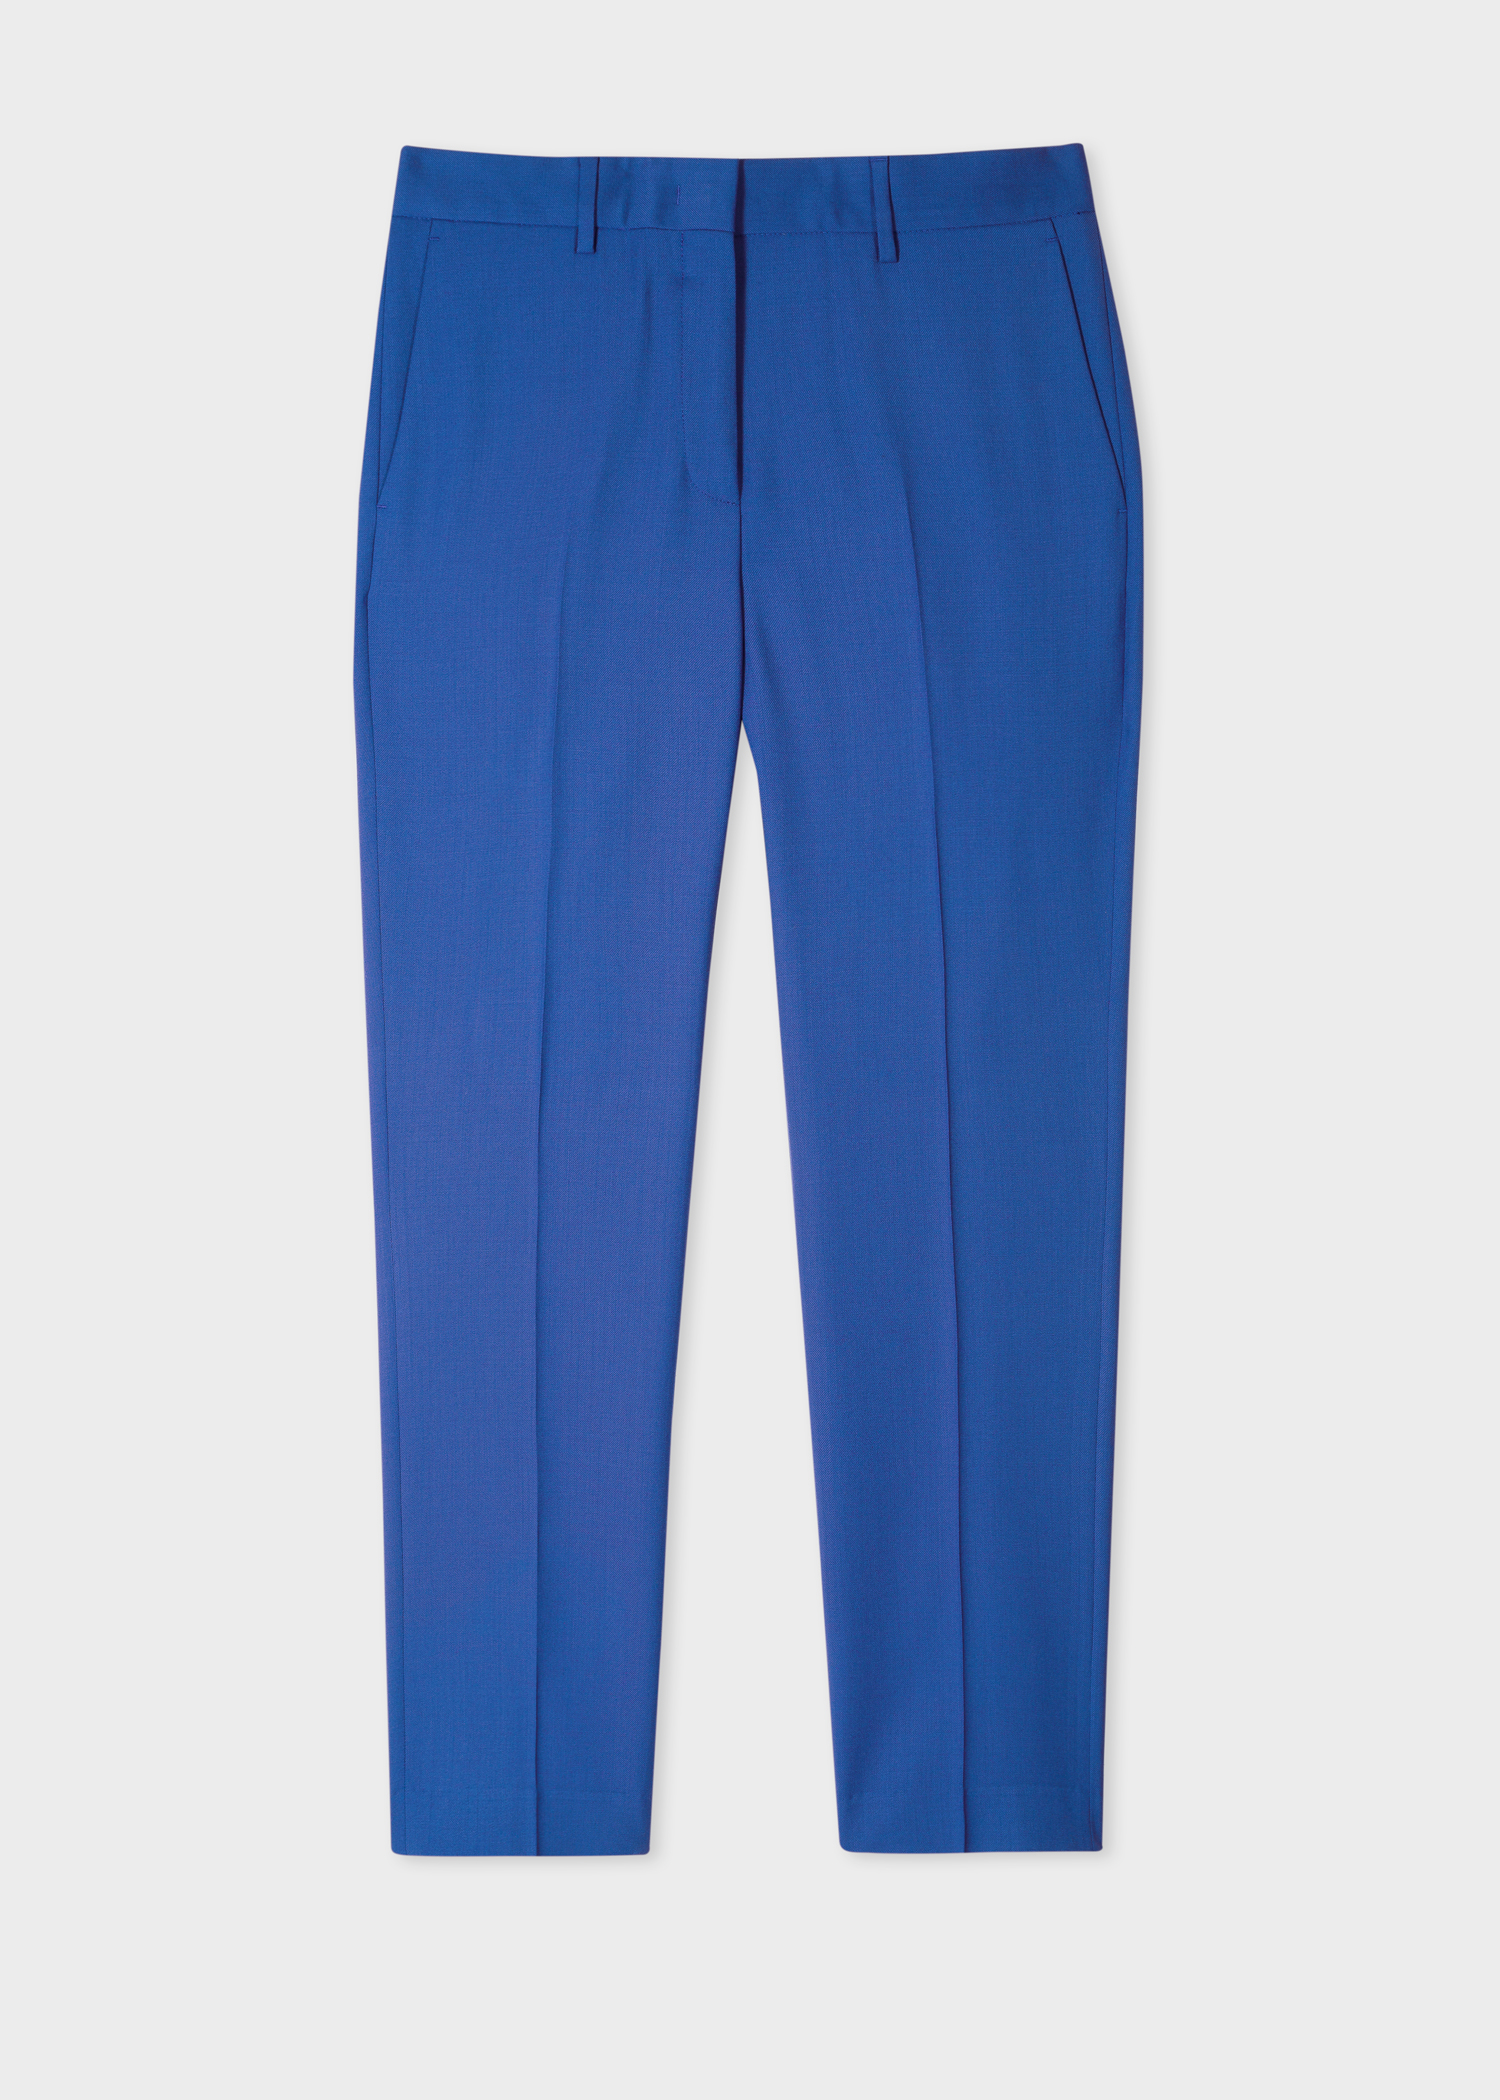 A Suit To Travel In - Women's Slim-Fit Indigo Wool Trousers